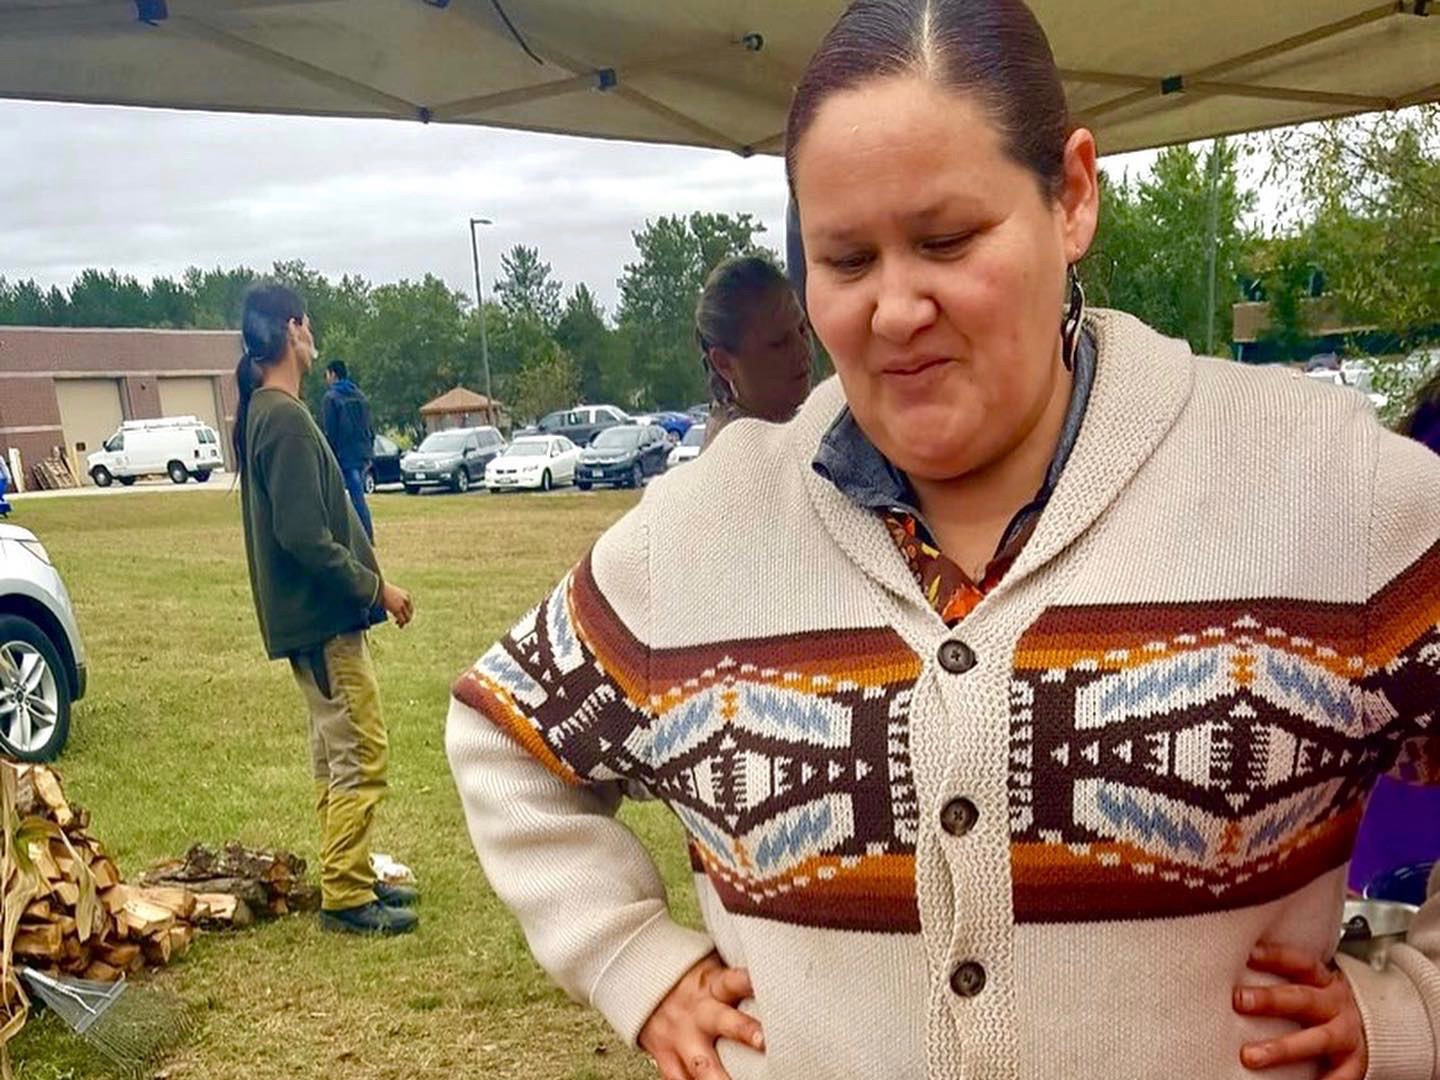 Ho-Chunk Nation showcases Native food at gaming facility